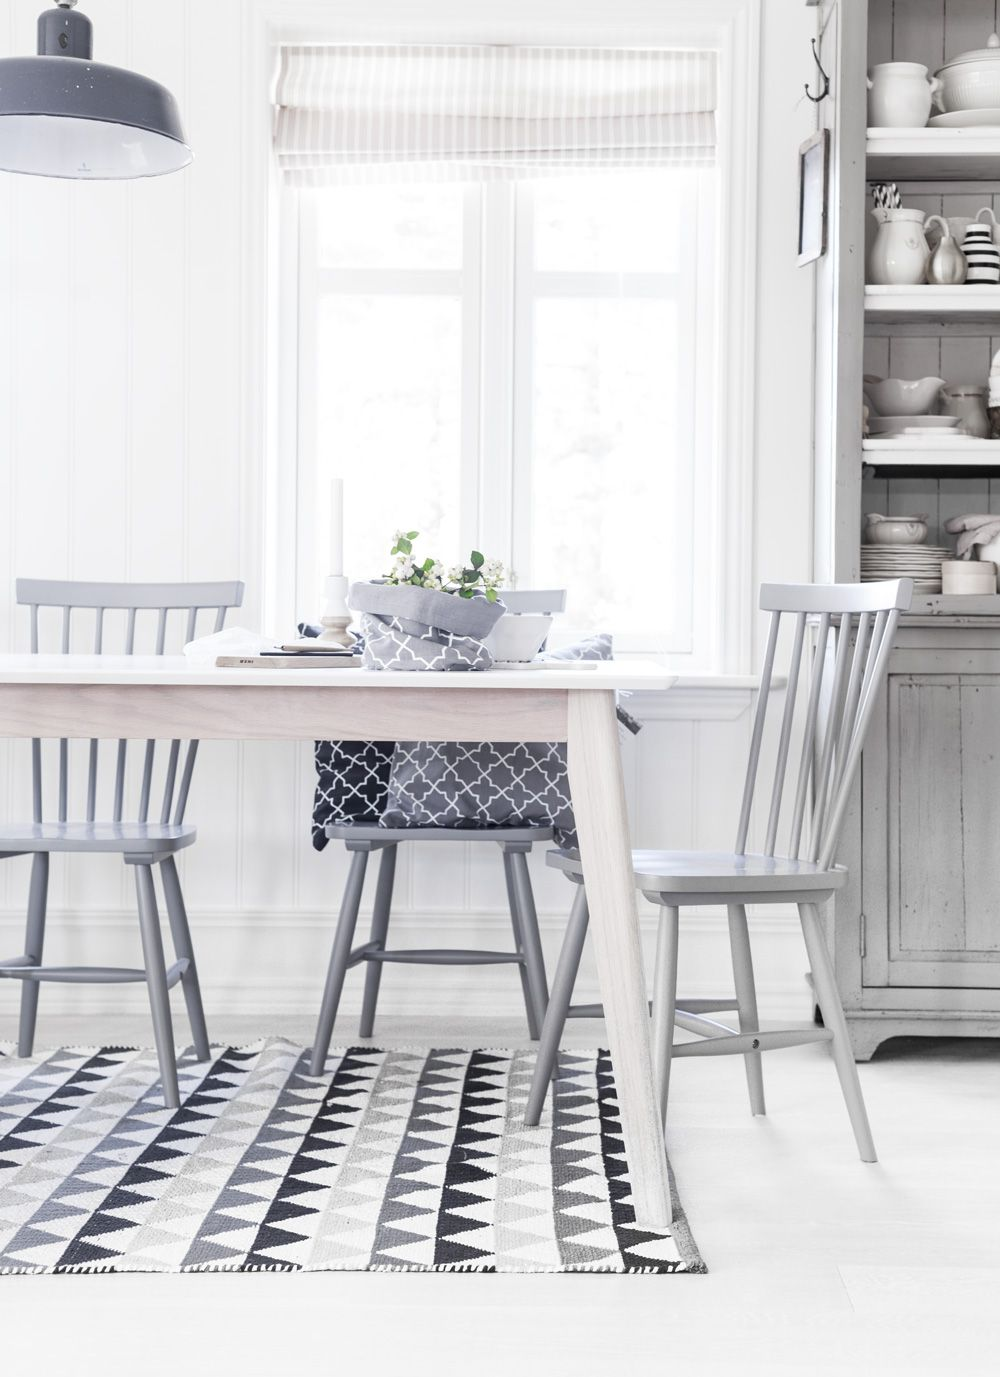 dining room inspiration new table with old chairs. Black Bedroom Furniture Sets. Home Design Ideas